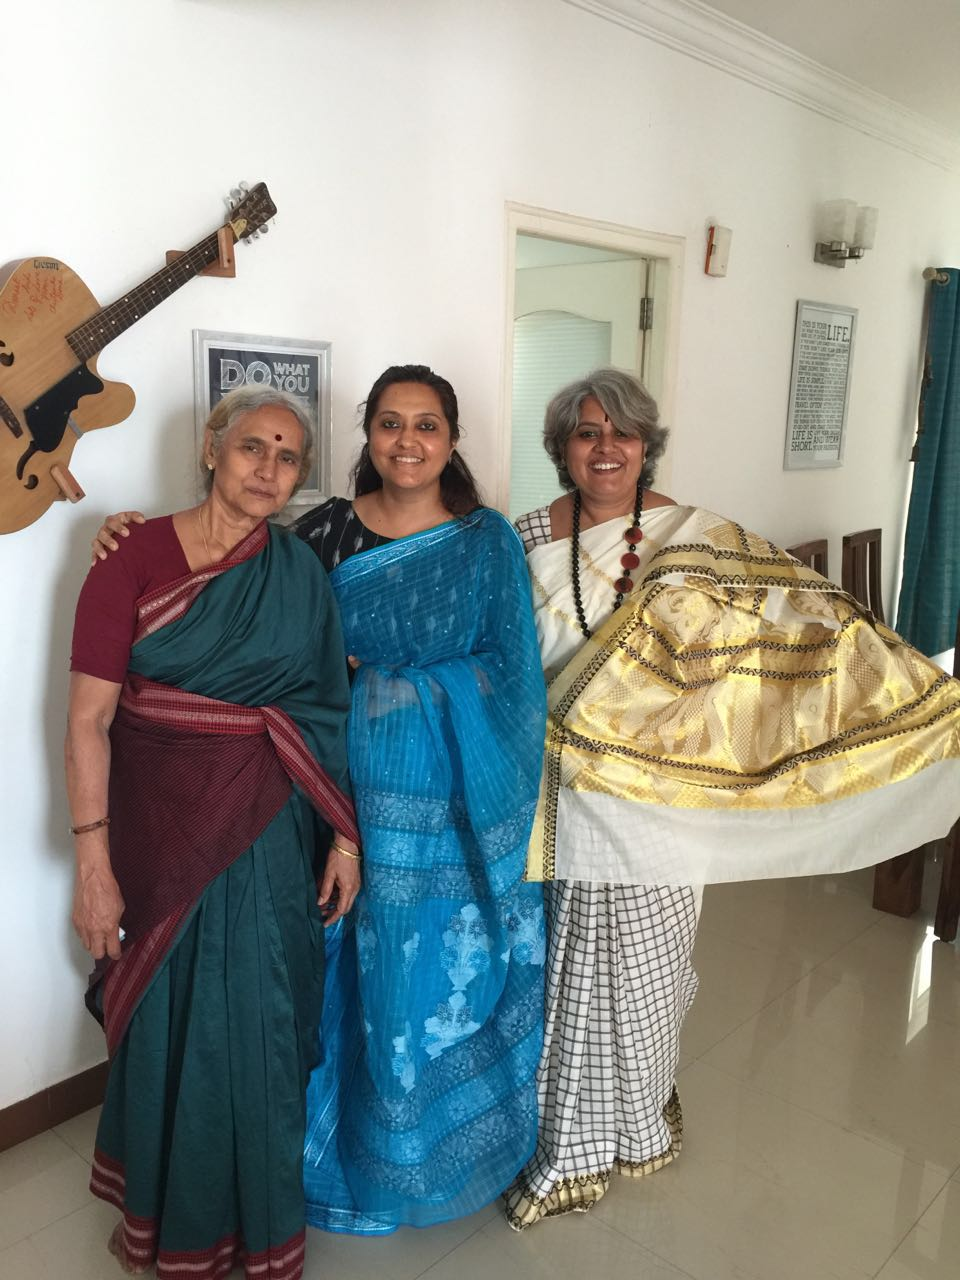 Amma is wearing her favourite green sari that is from Kumaran stores. Pushpa is a blue Bengali taint and I am in the off-white Kasavu.